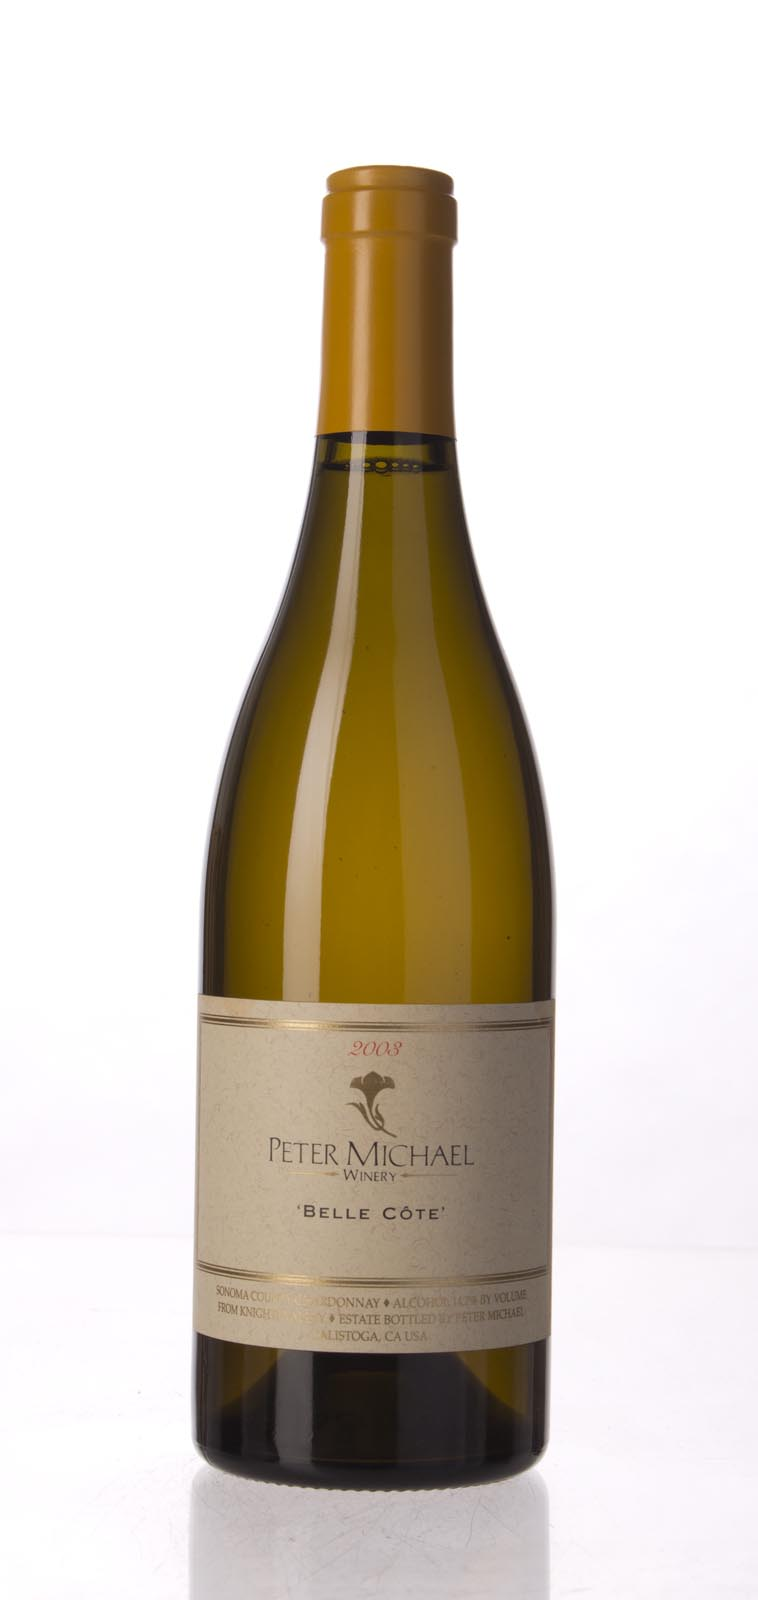 Peter Michael Winery Chardonnay Belle Cote 2003, 750mL (WA94) from The BPW - Merchants of rare and fine wines.